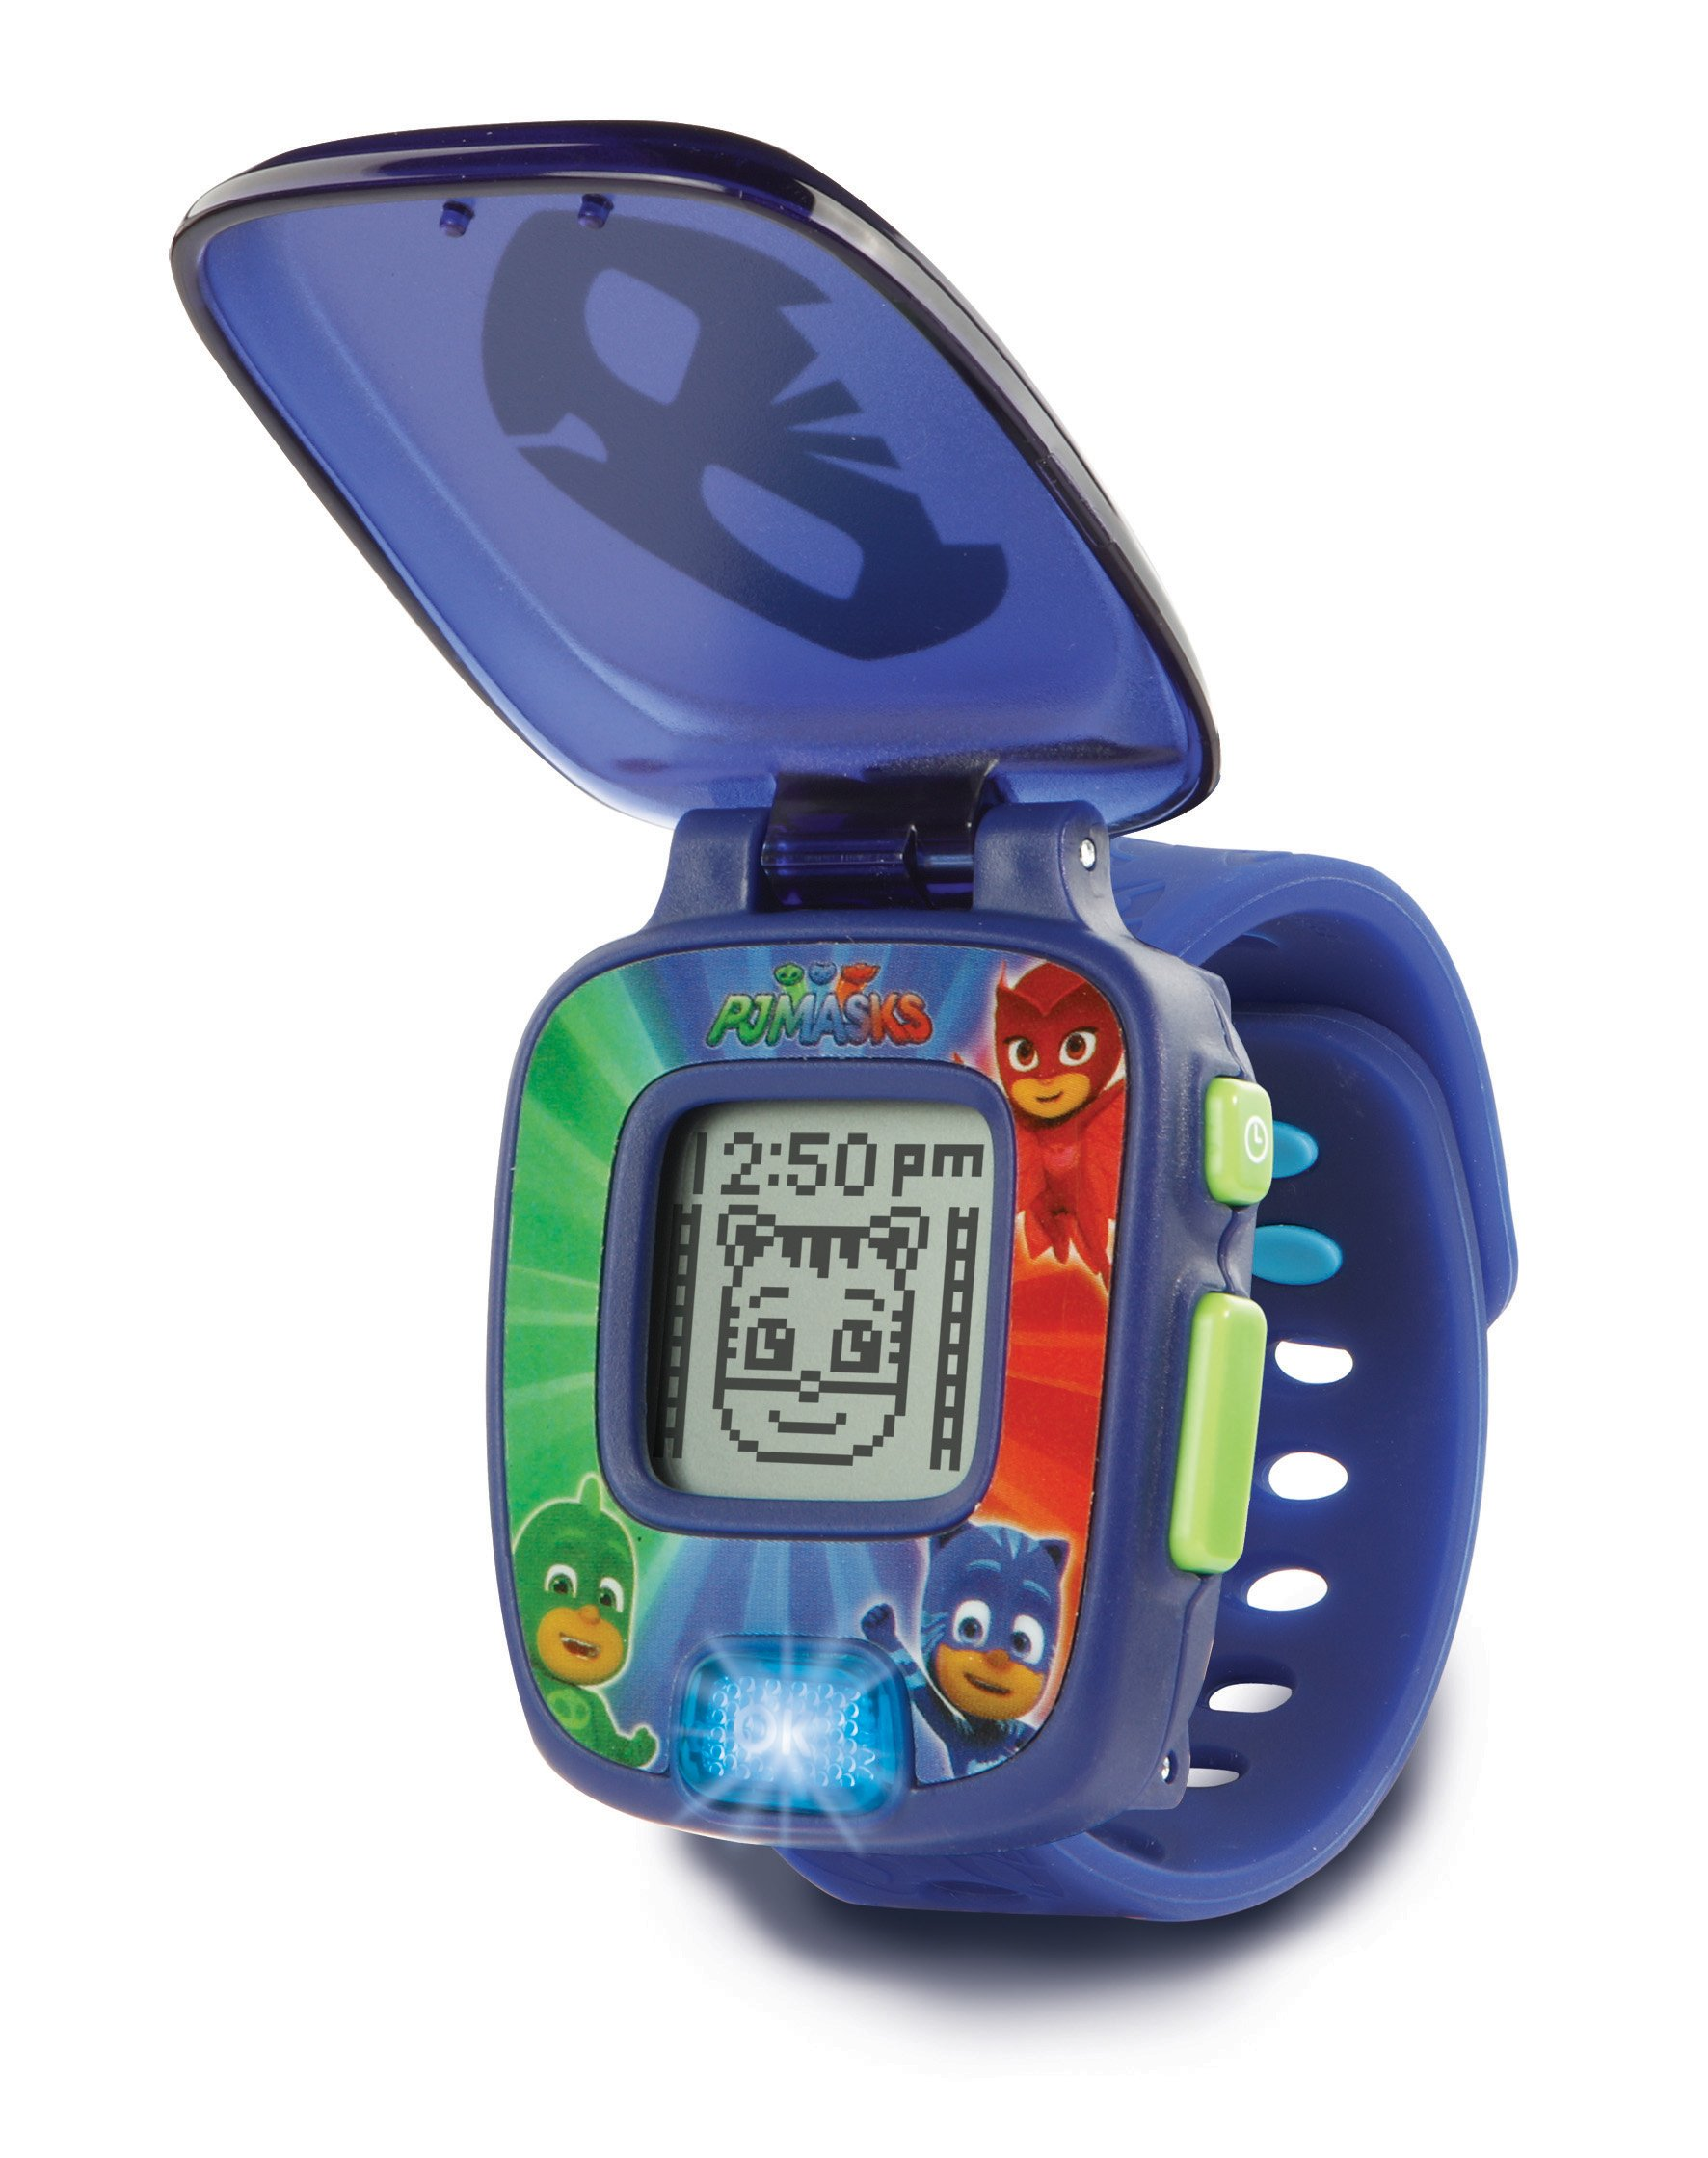 VTech 175803 Catboy PJ Masks Watch Toy